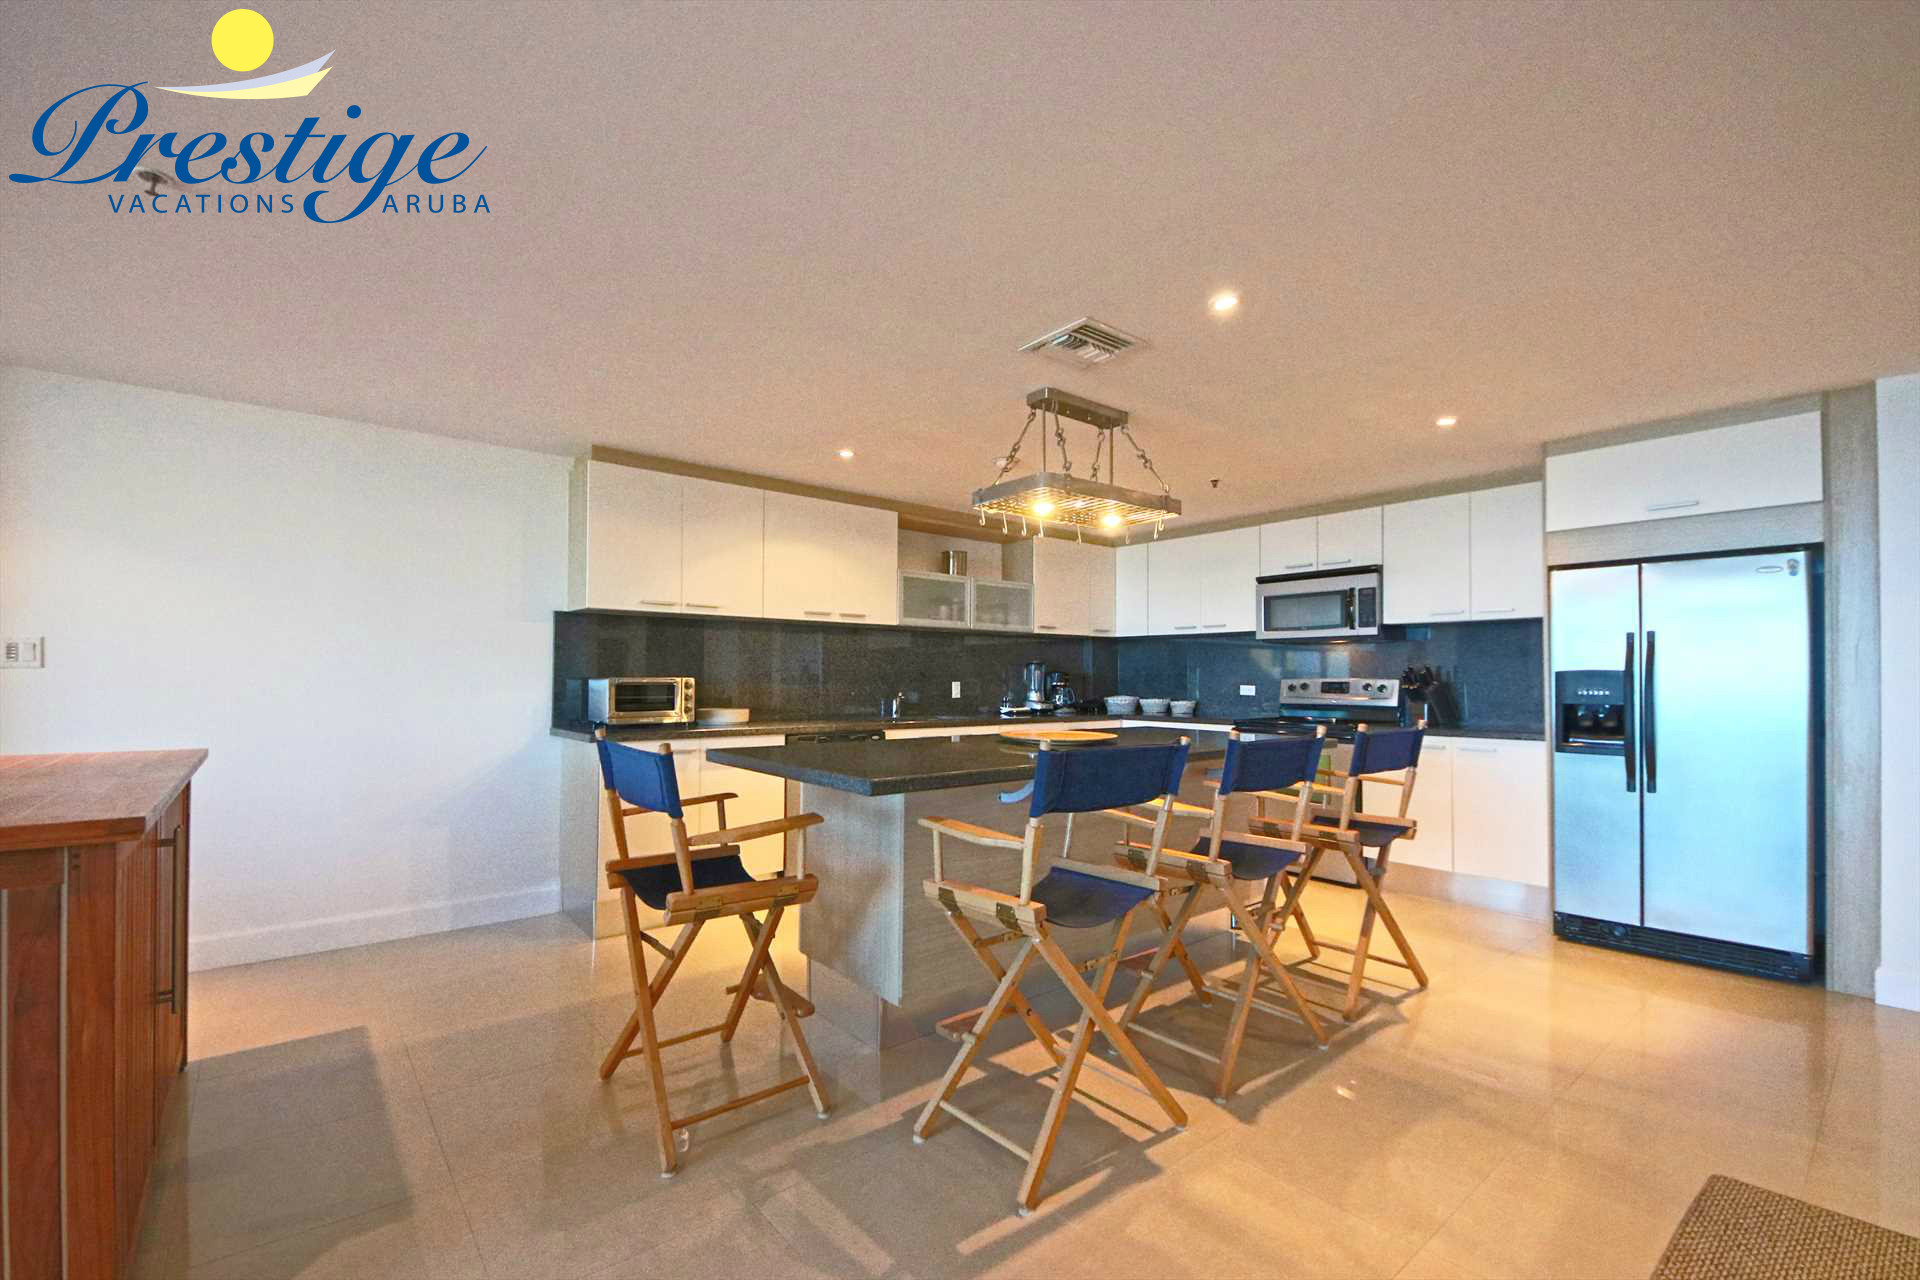 The fully equipped kitchen with 4-bar stools around the large kitchen island